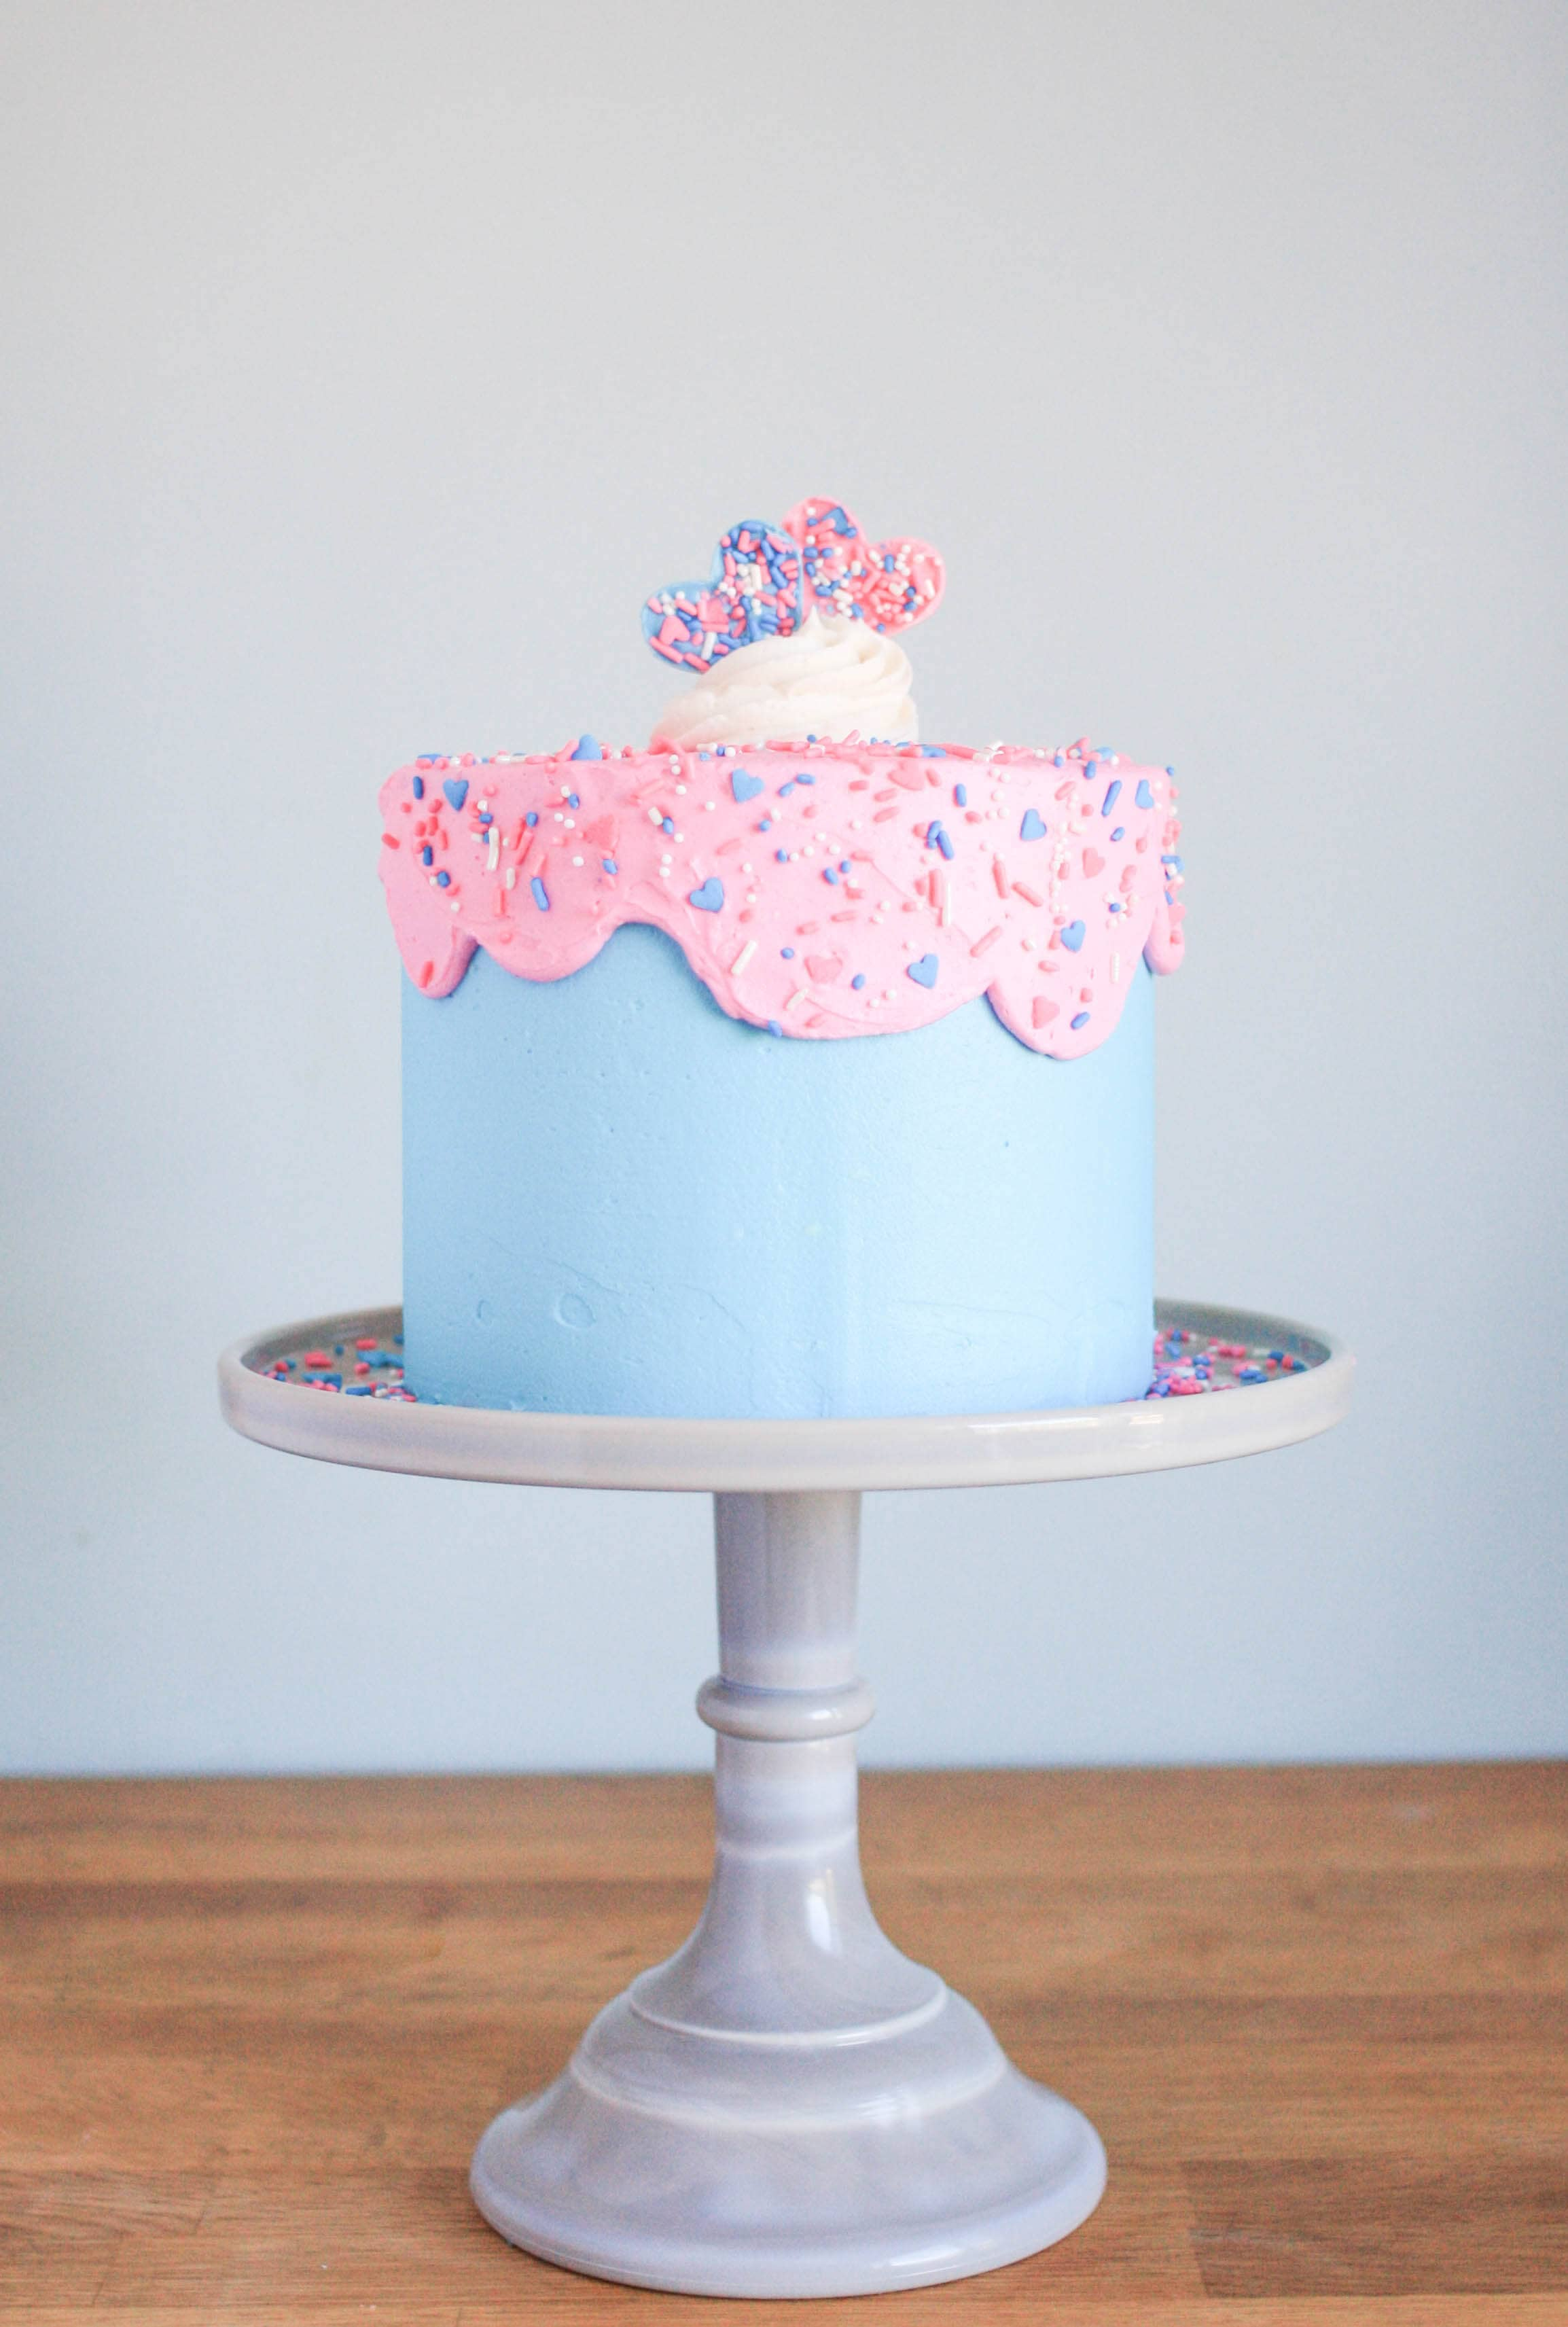 Classic Pink and Blue with Sprinkles